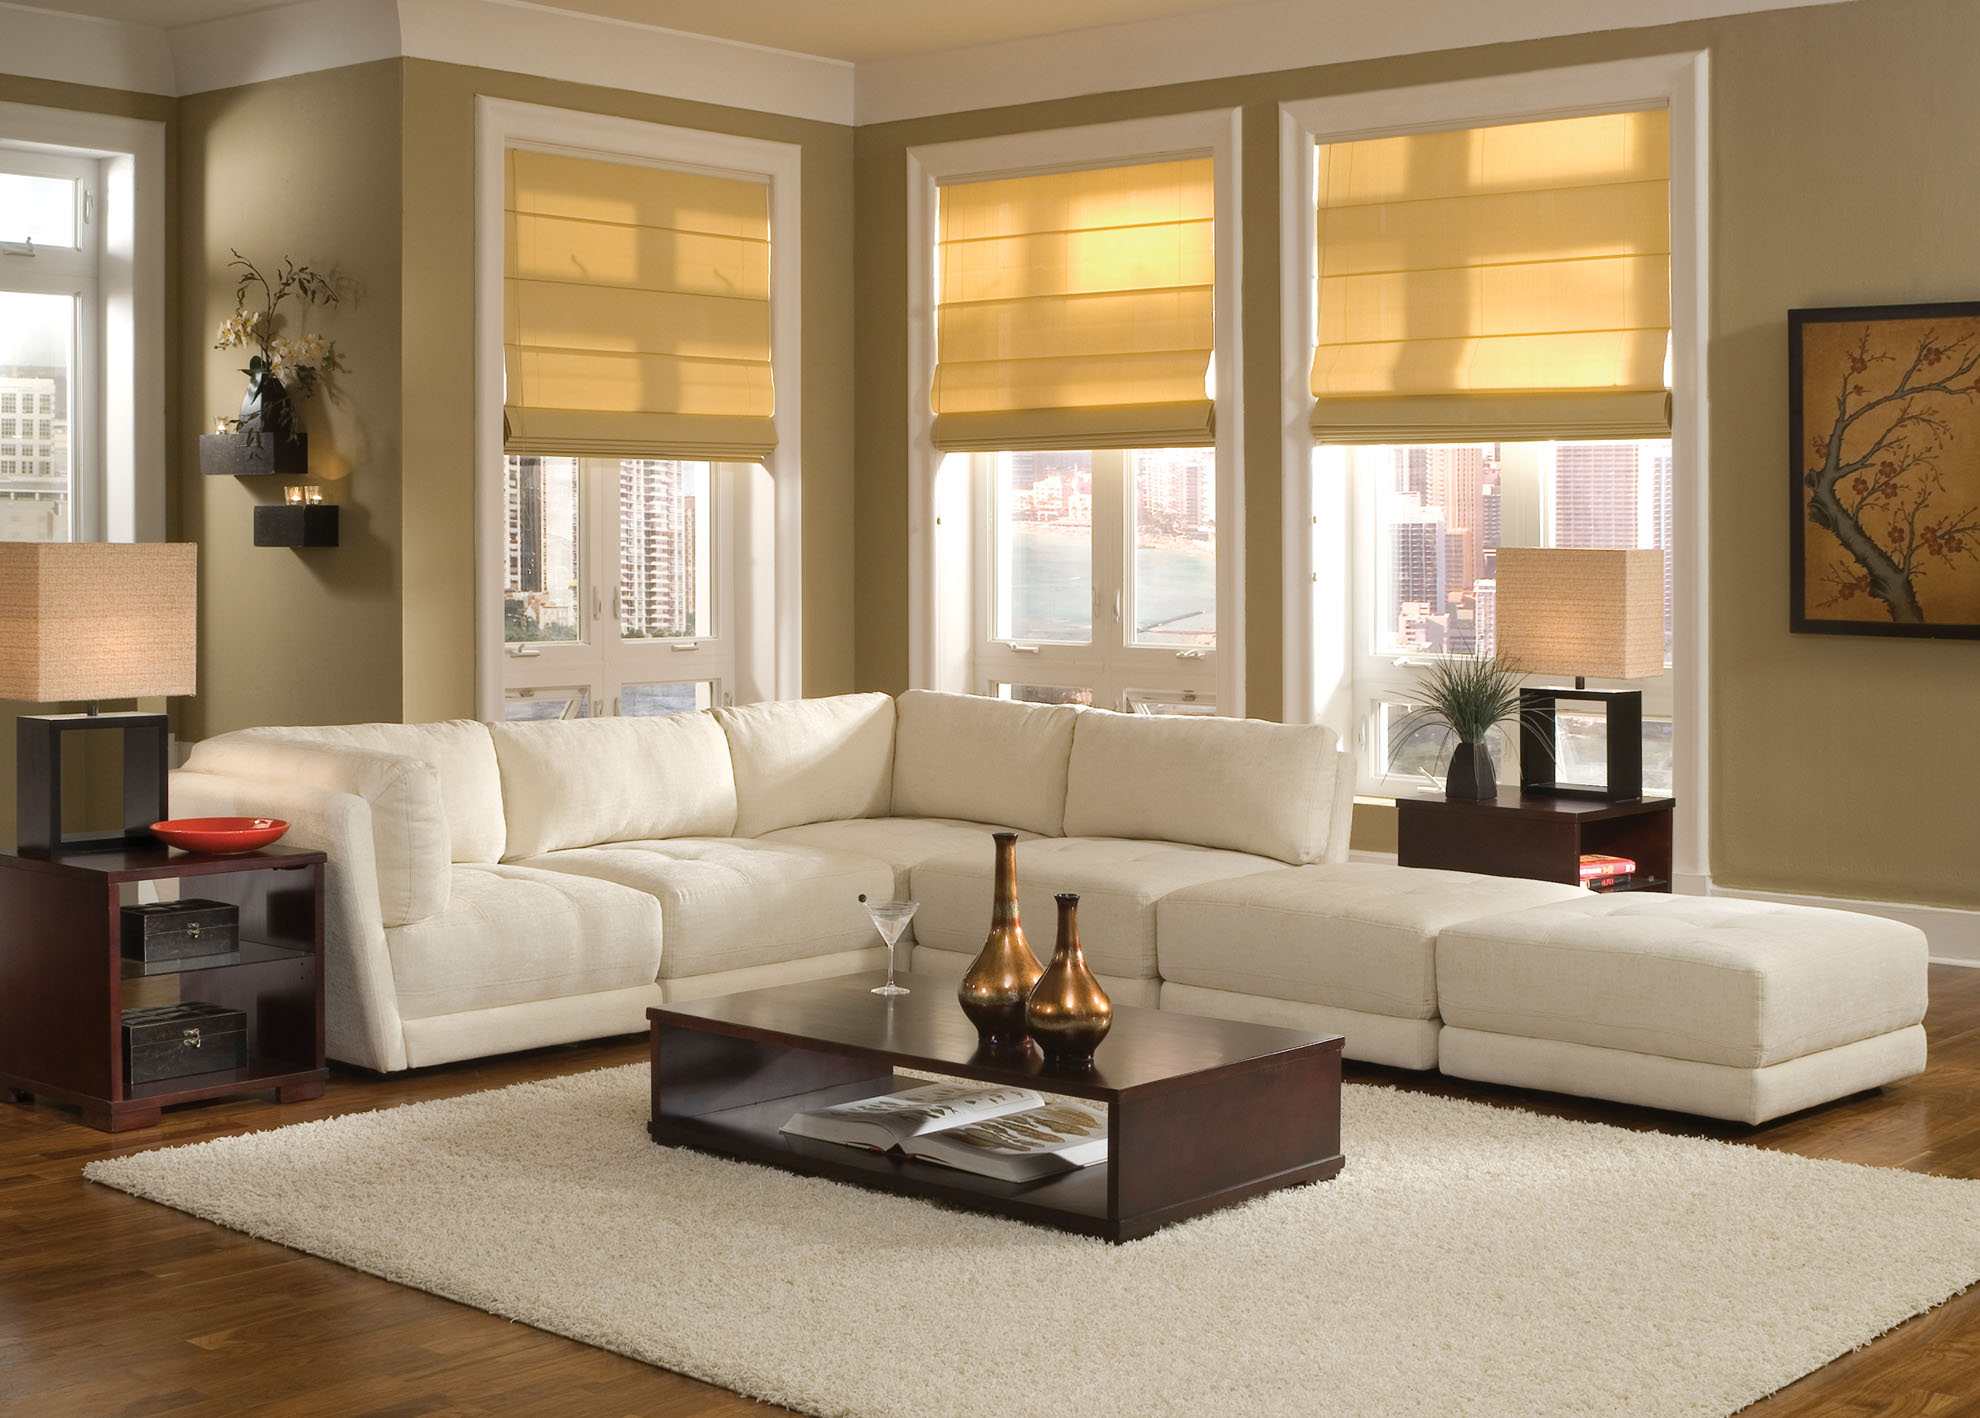 Elegant Living Room Couches 22 Reasons To Renew Your Seats Today Hawk Haven